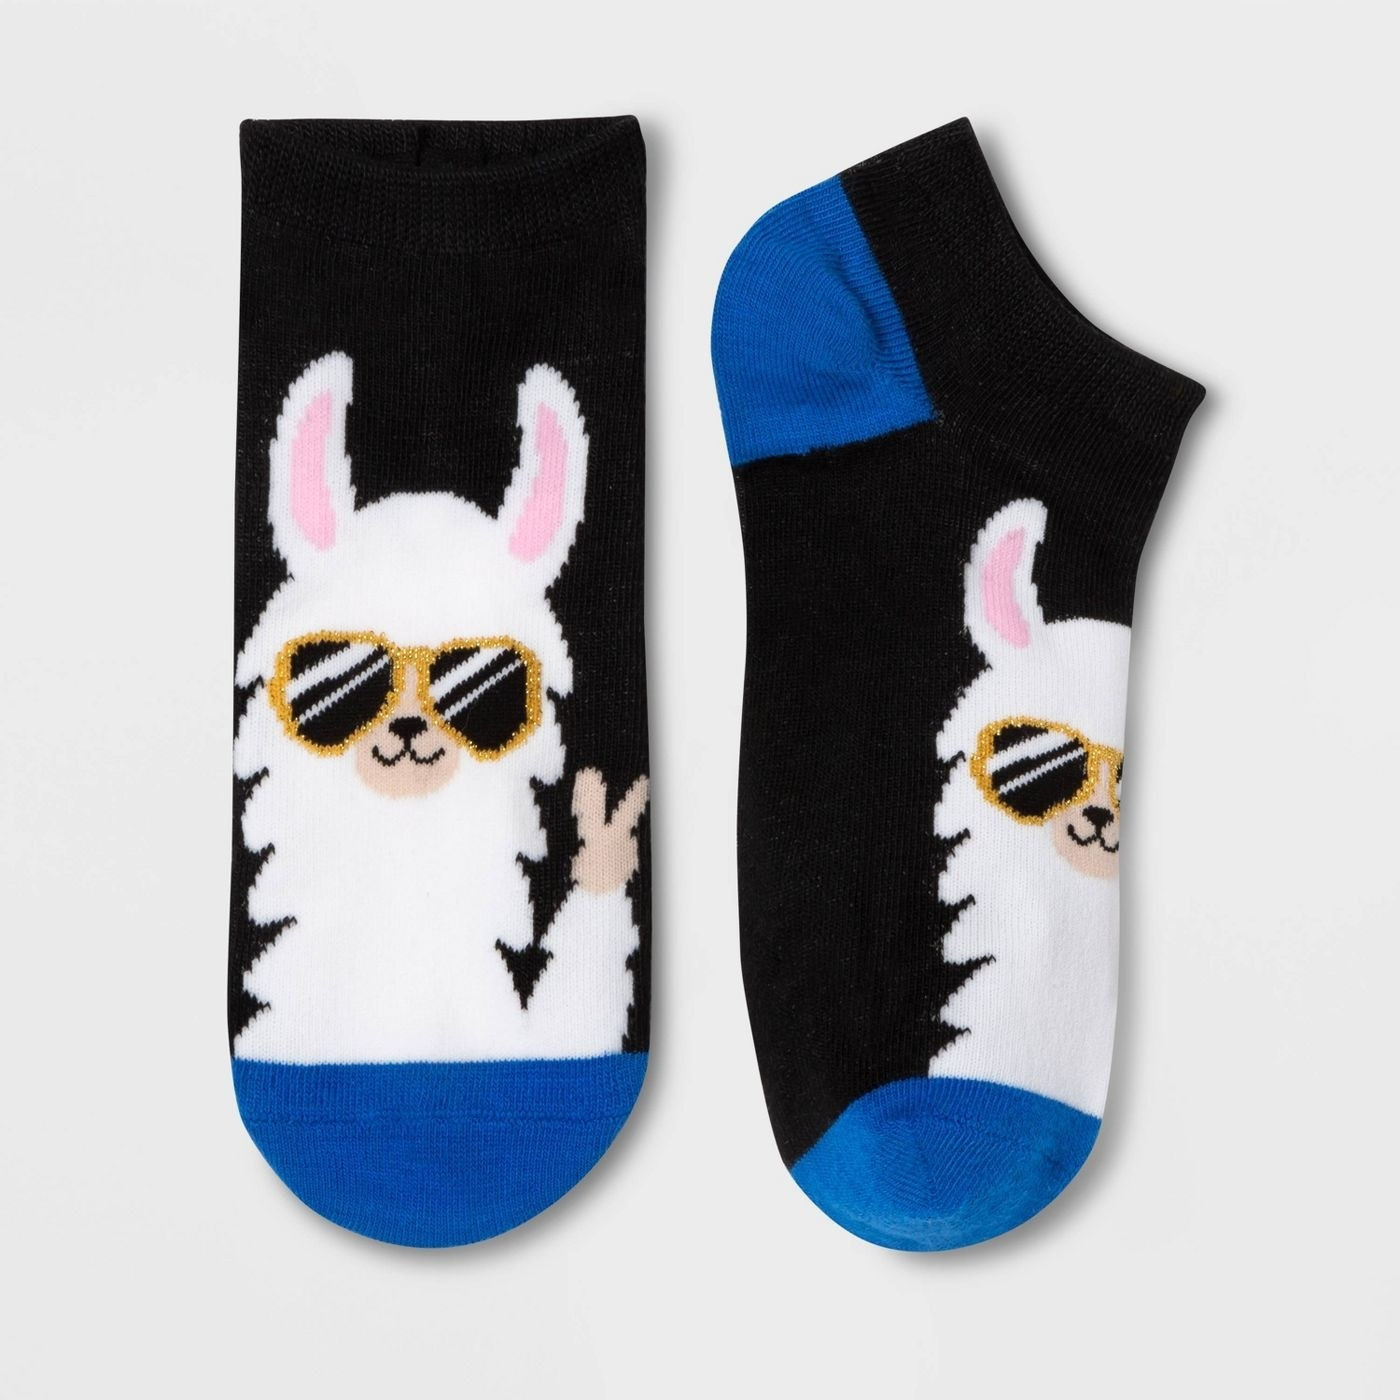 Short black ankle socks, with the image of a cartoon llama wearing sunglasses and giving the peace sign across the front of the foot